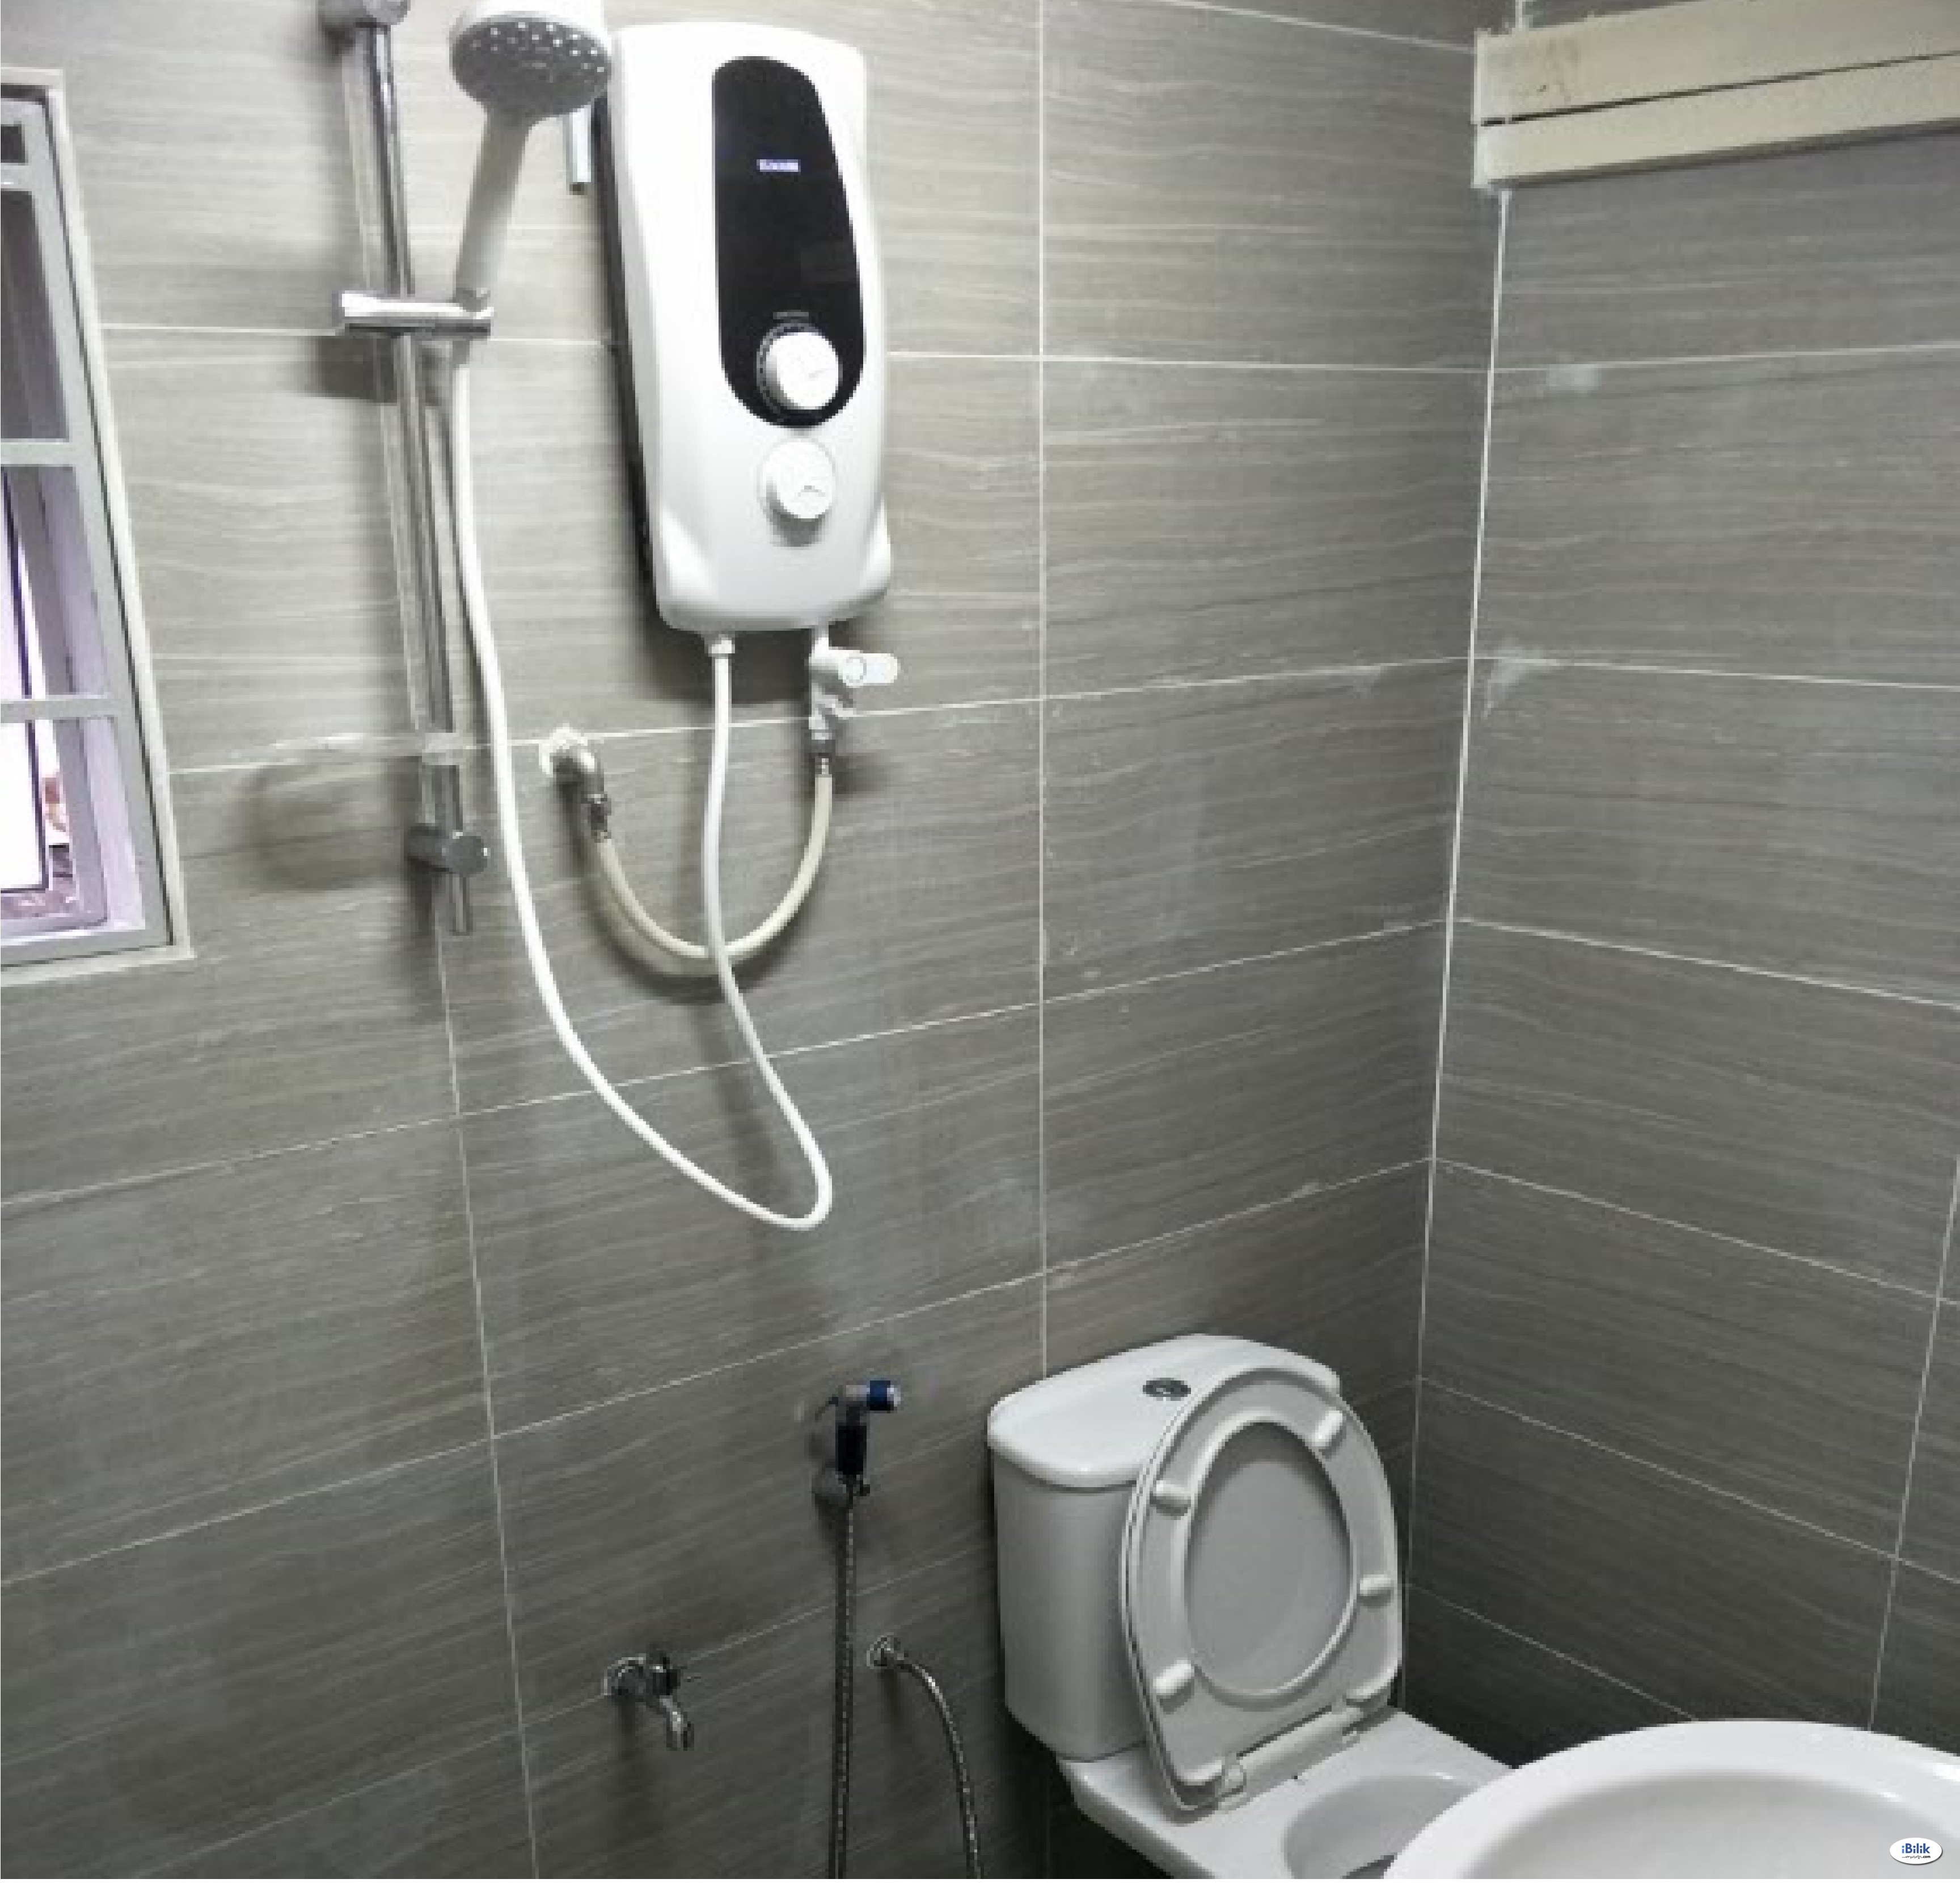 PJS 10/16 - Fully Furnished Room For Rent (Private Bathroom+100mbps Wifi)